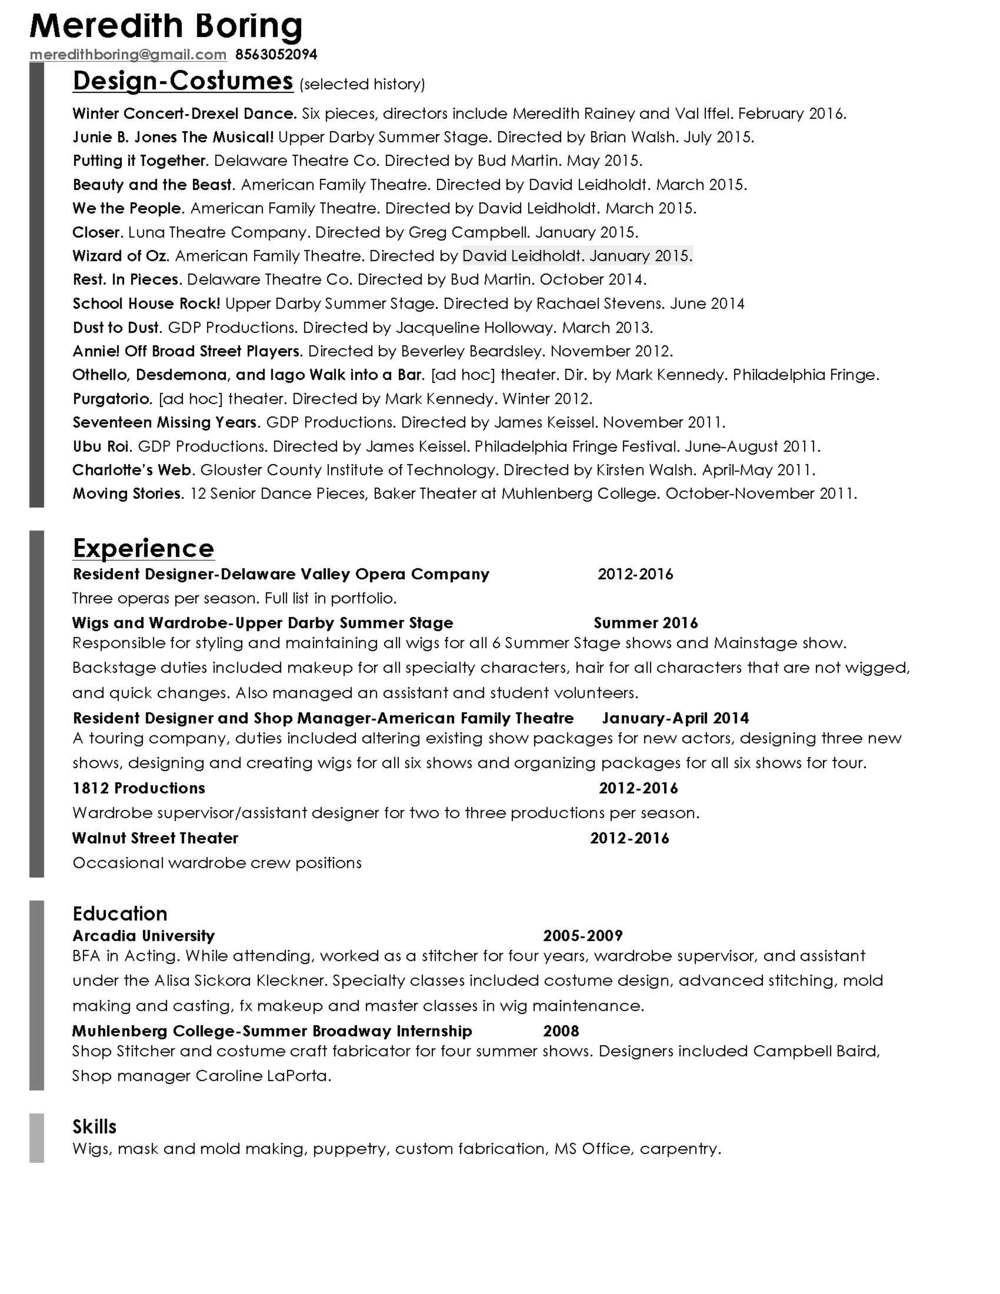 resume meredith boring theatrical design resume